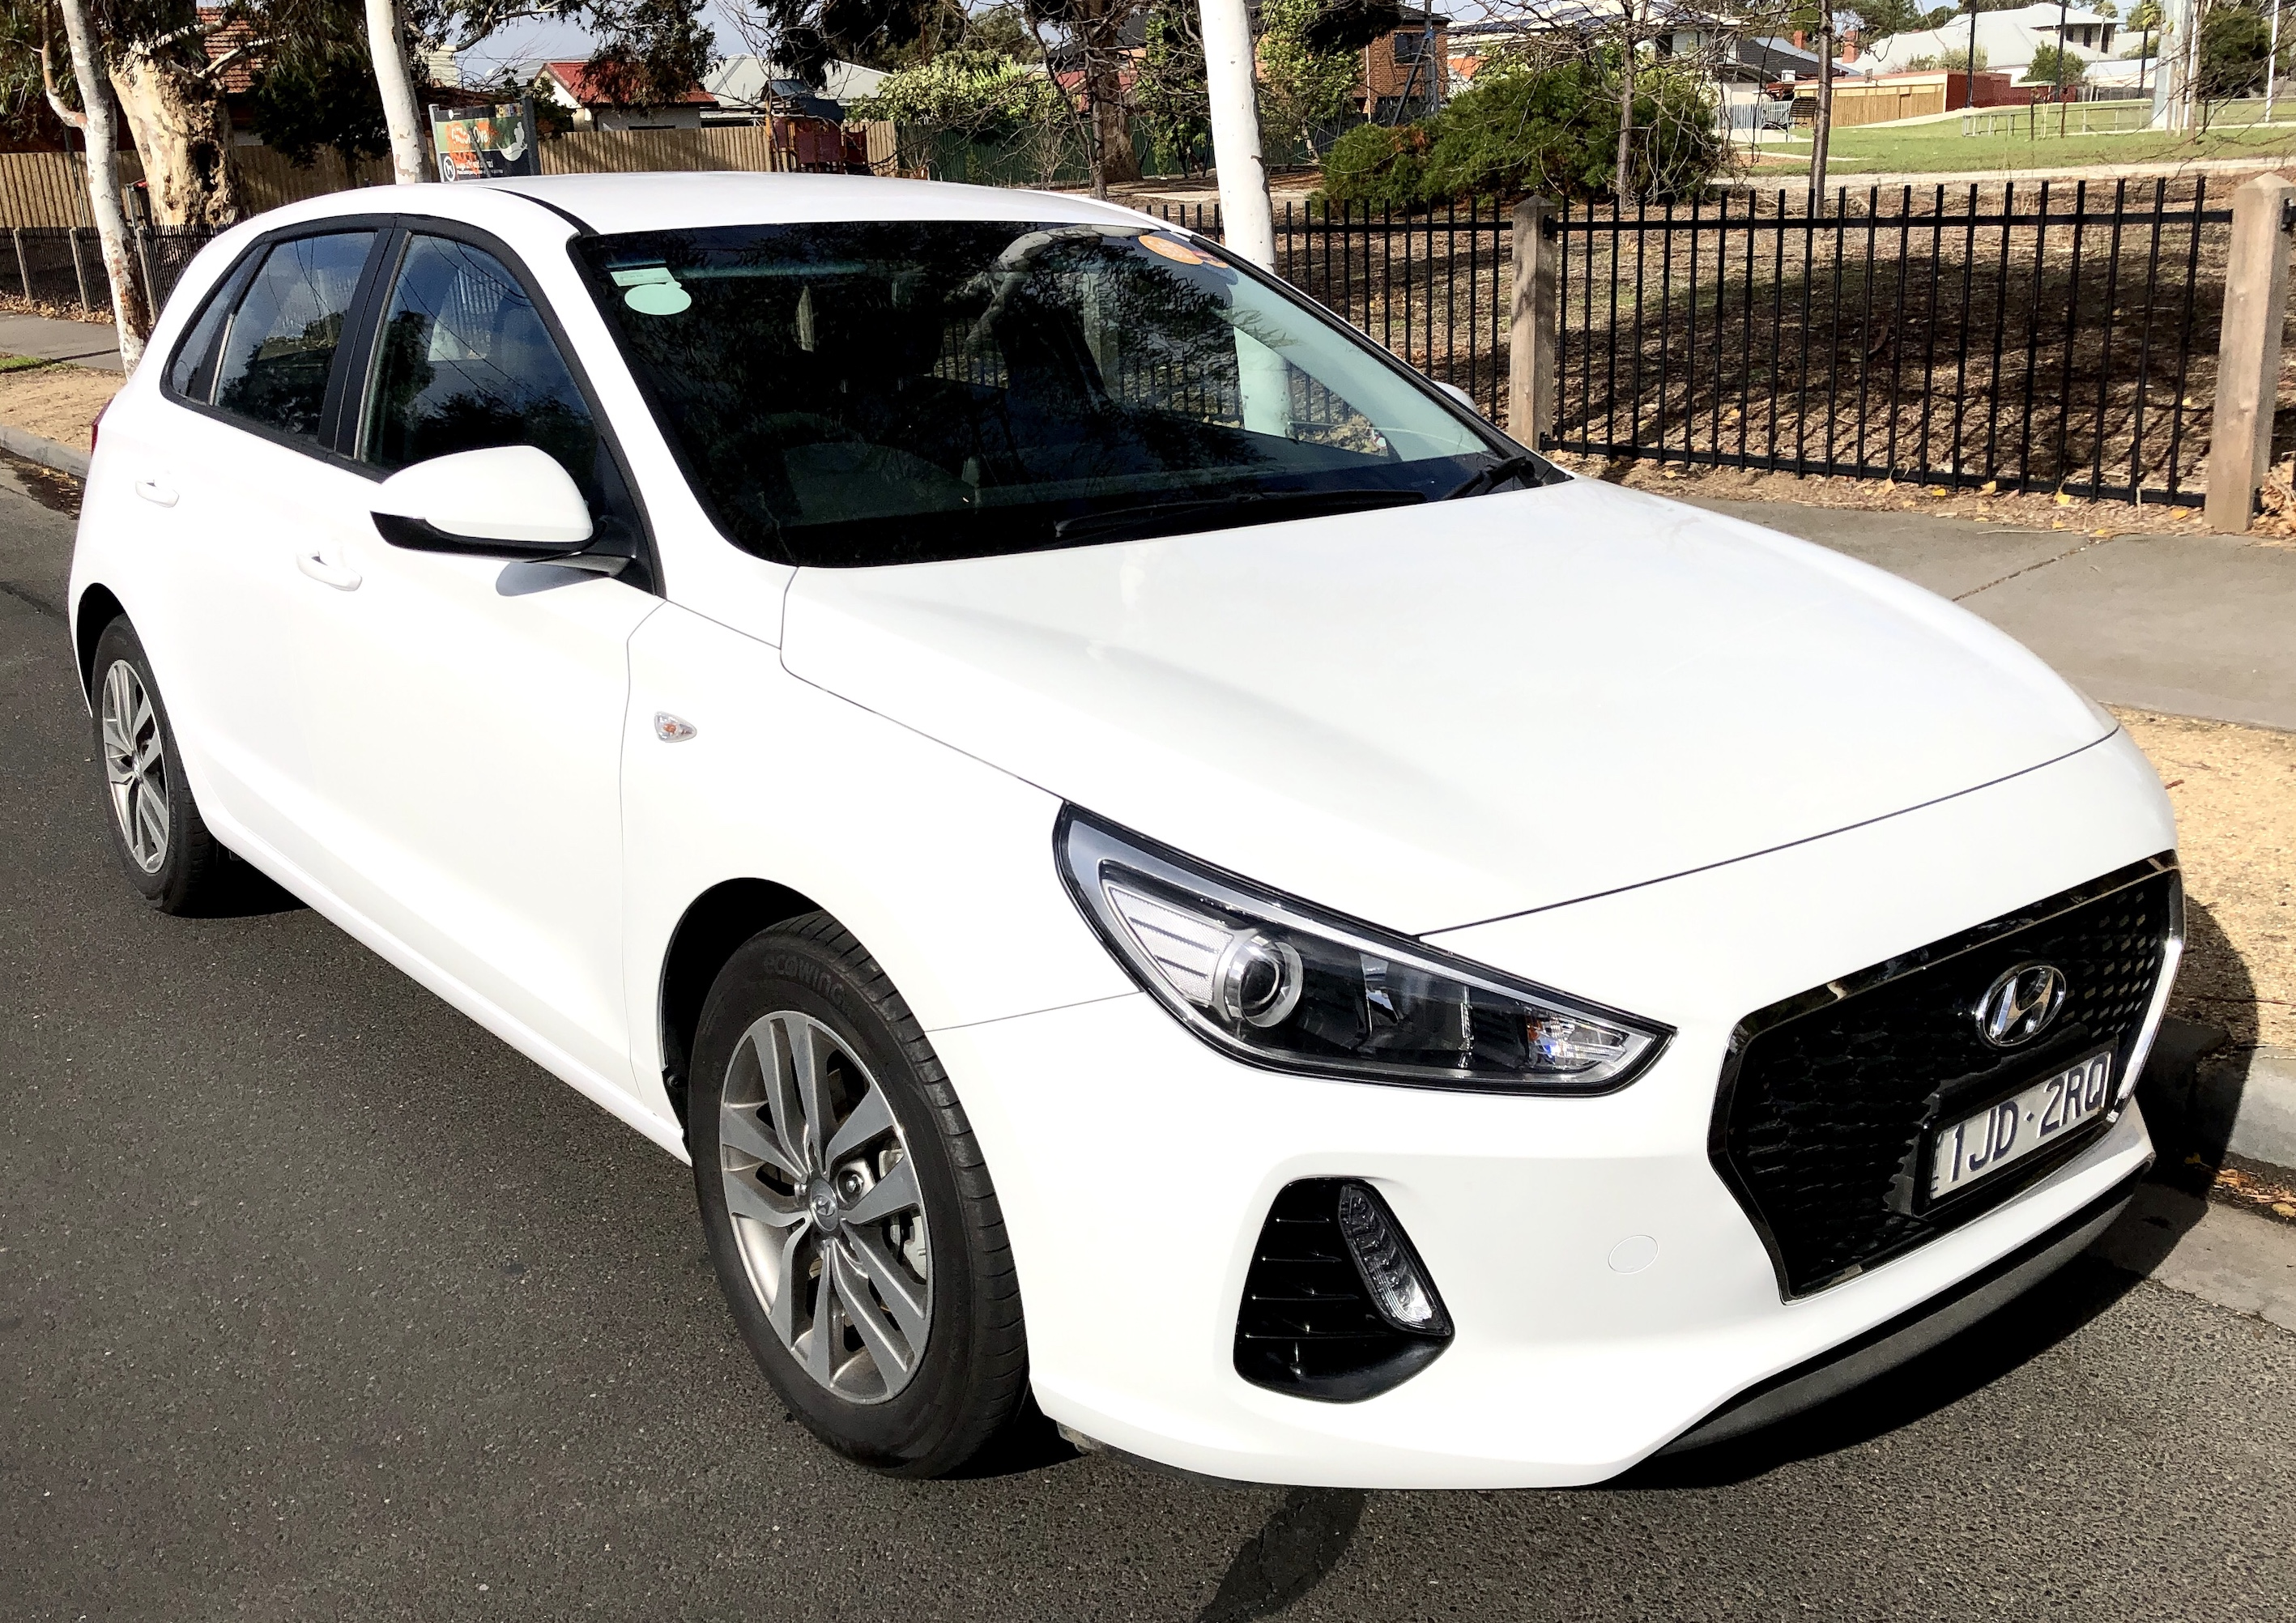 Picture of Rodwan's 2017 Hyundai I30